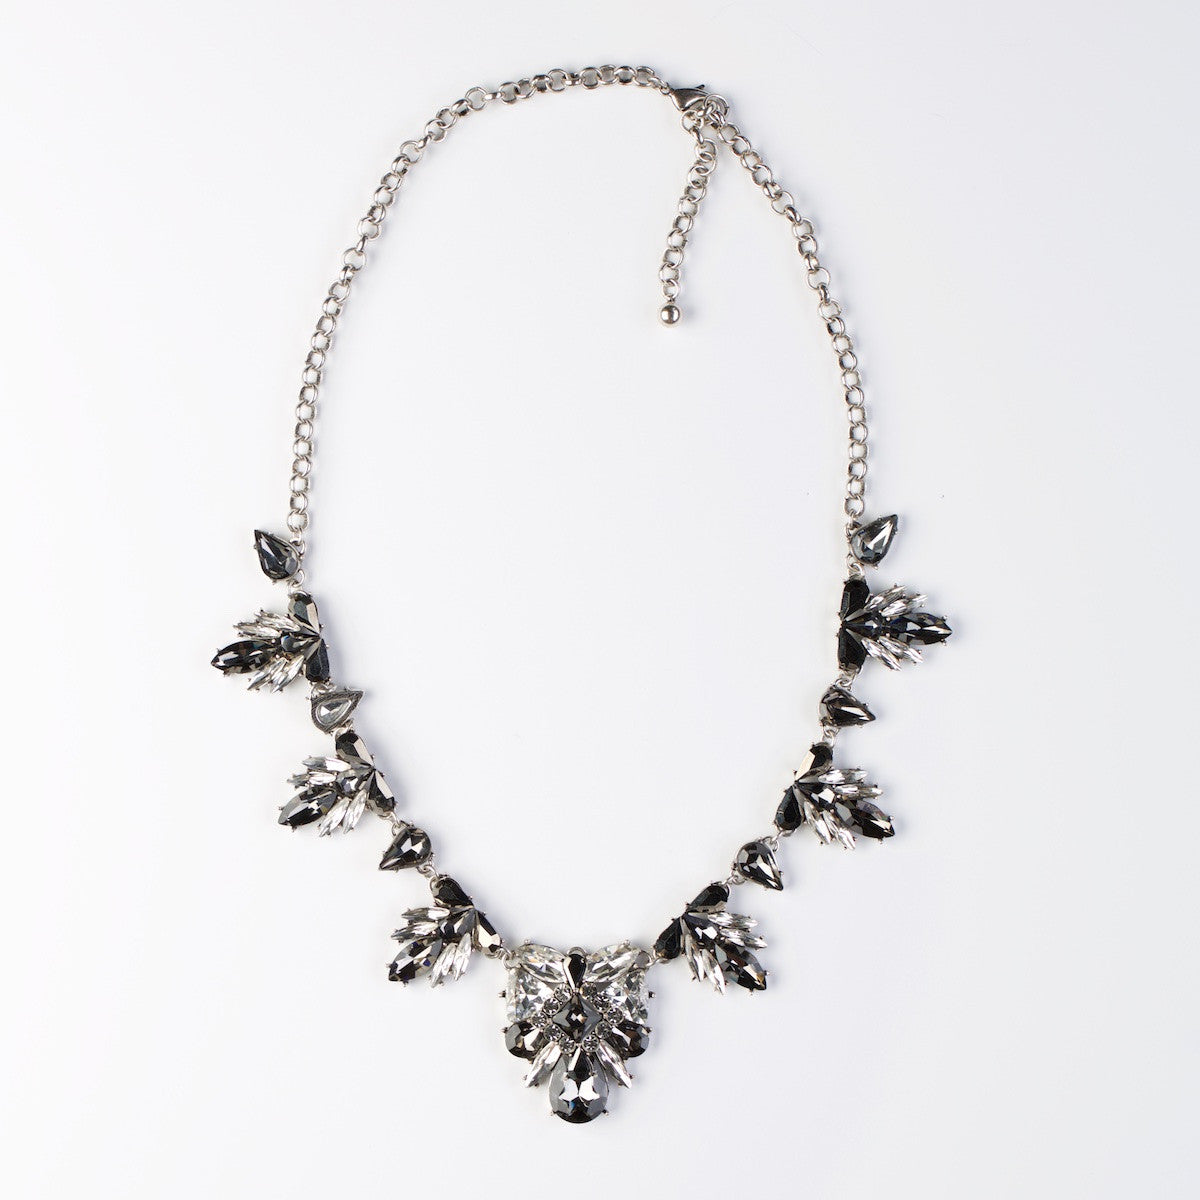 LUNA NECKLACE - CHARCOAL